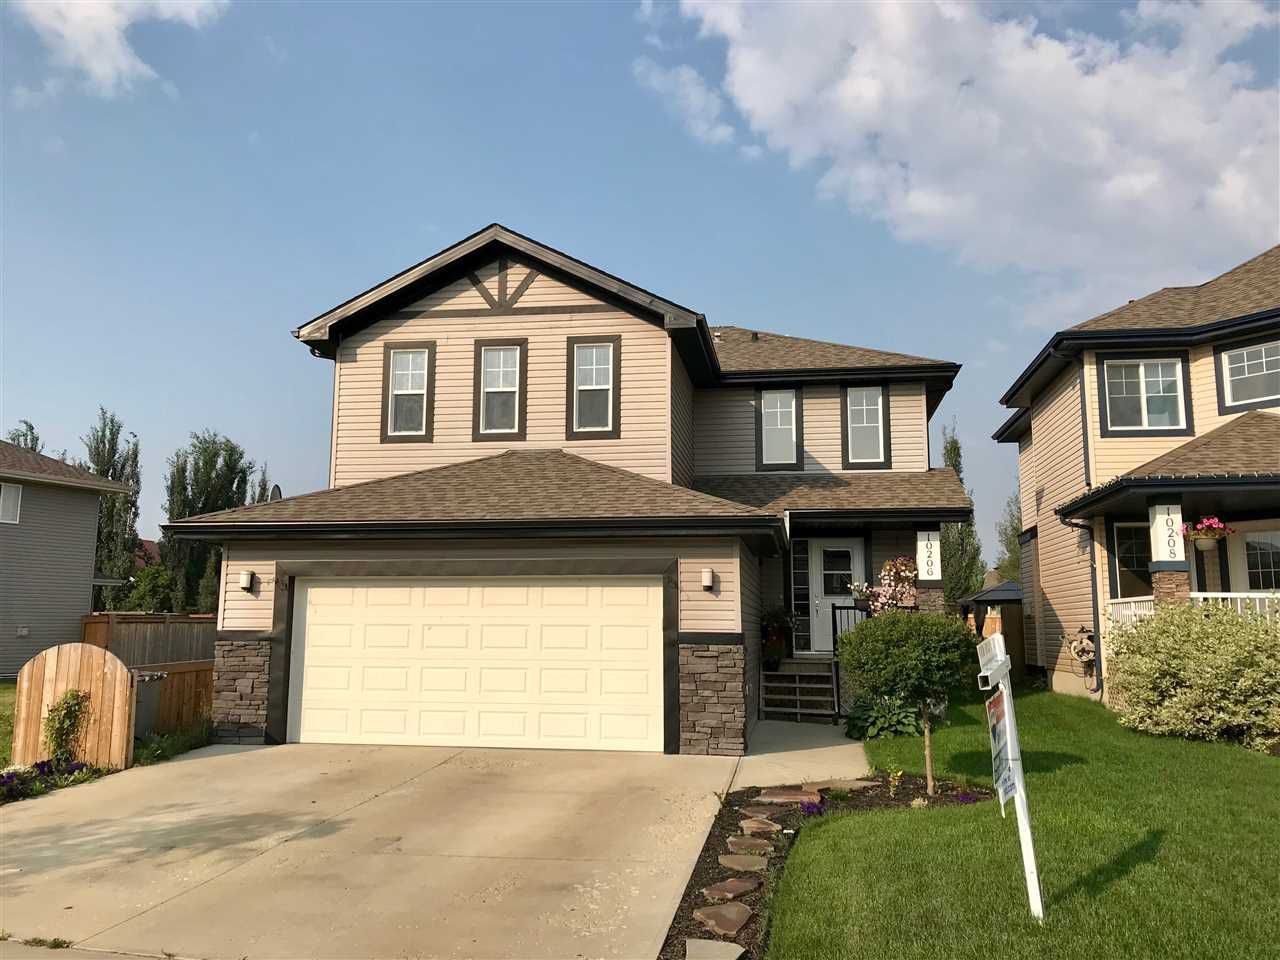 Main Photo: 10206 96 Street: Morinville House for sale : MLS®# E4134596